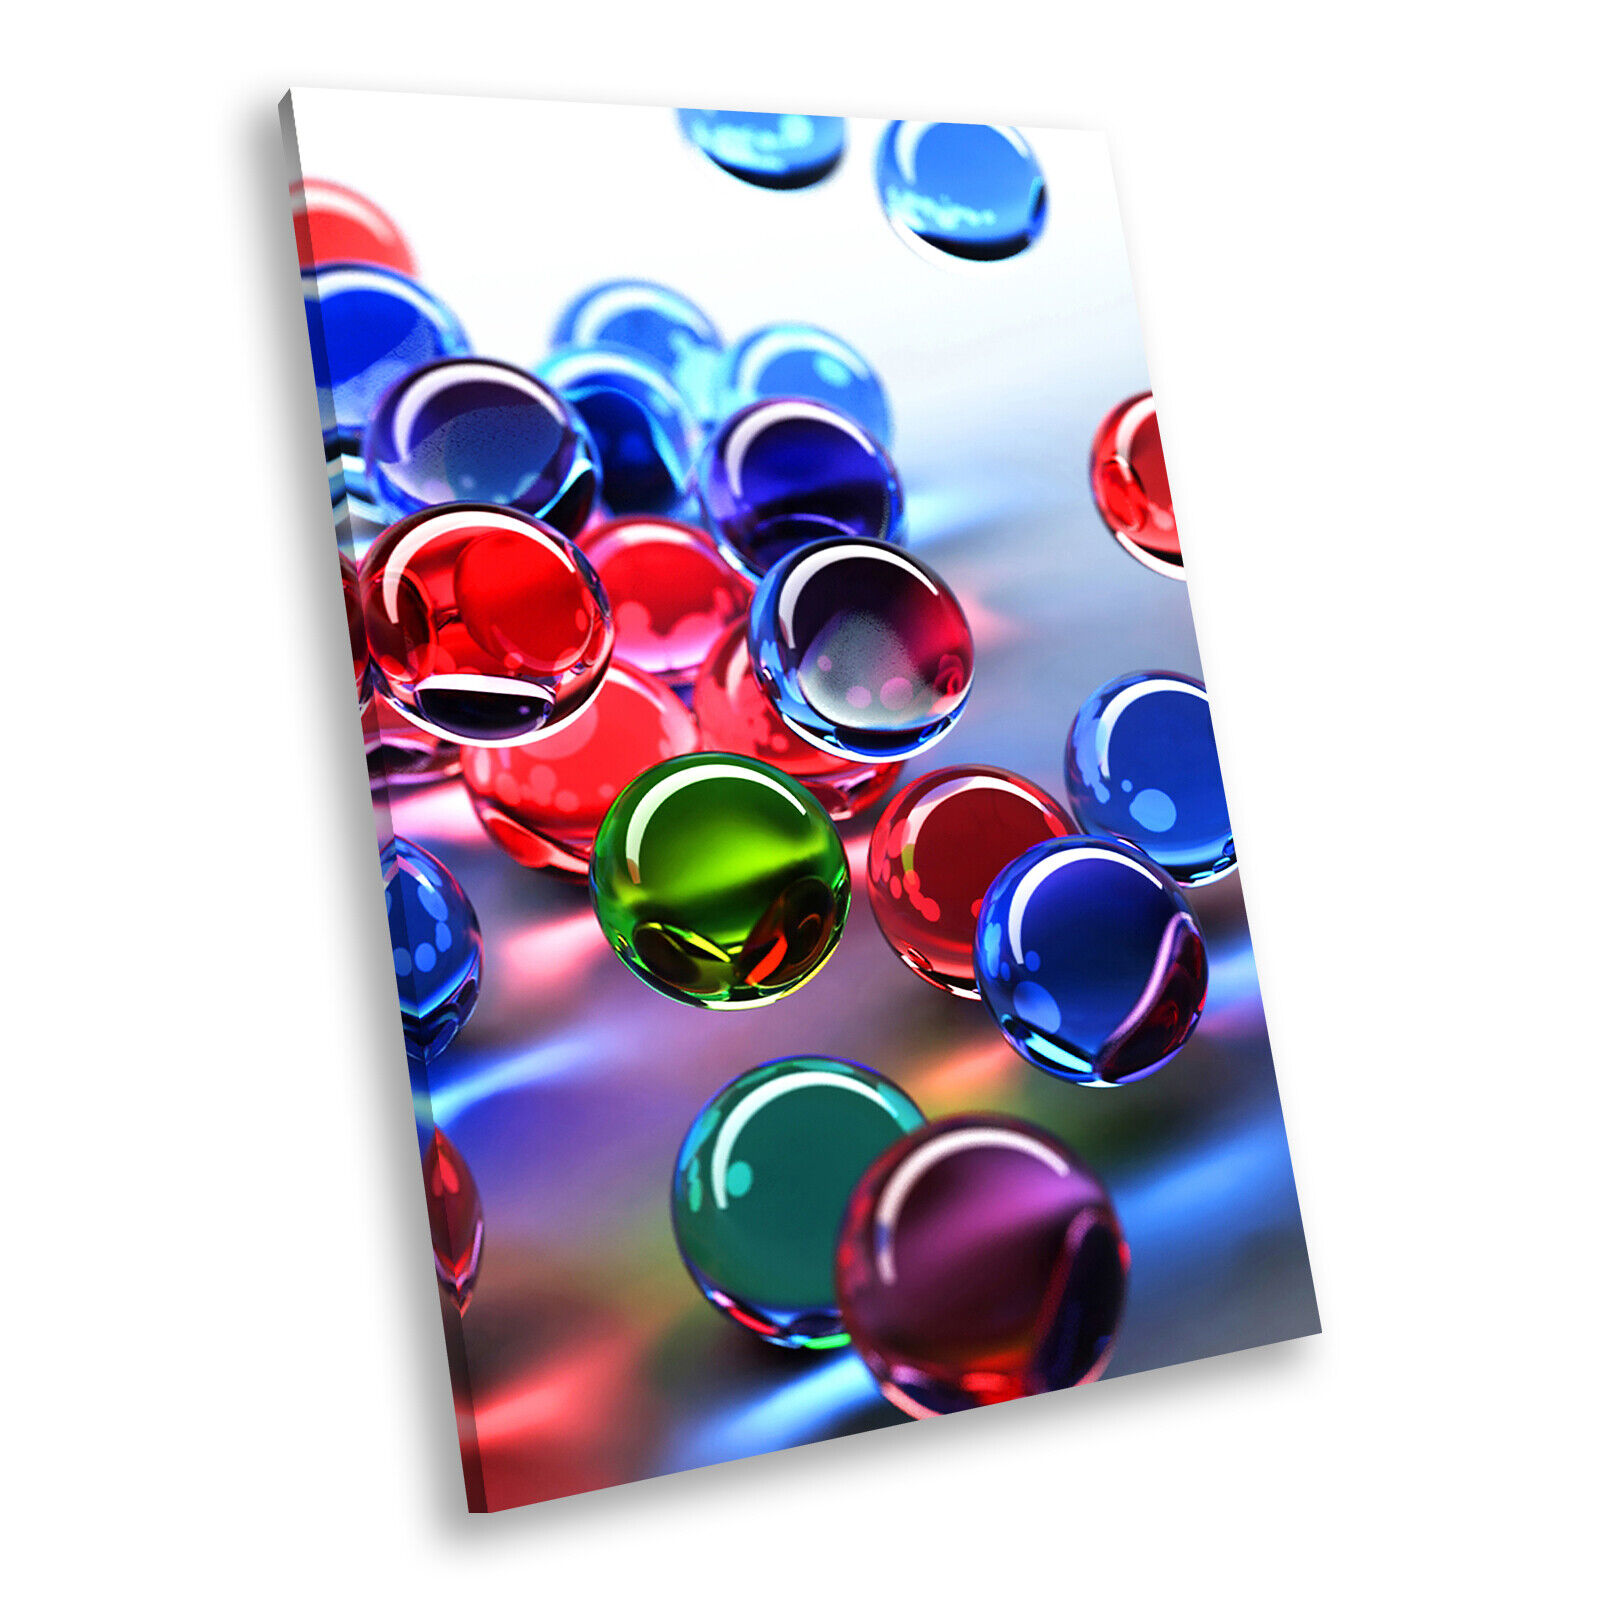 Blau rot 3D Marbles Portrait Abstract Canvas Wall Art Large Picture Prints